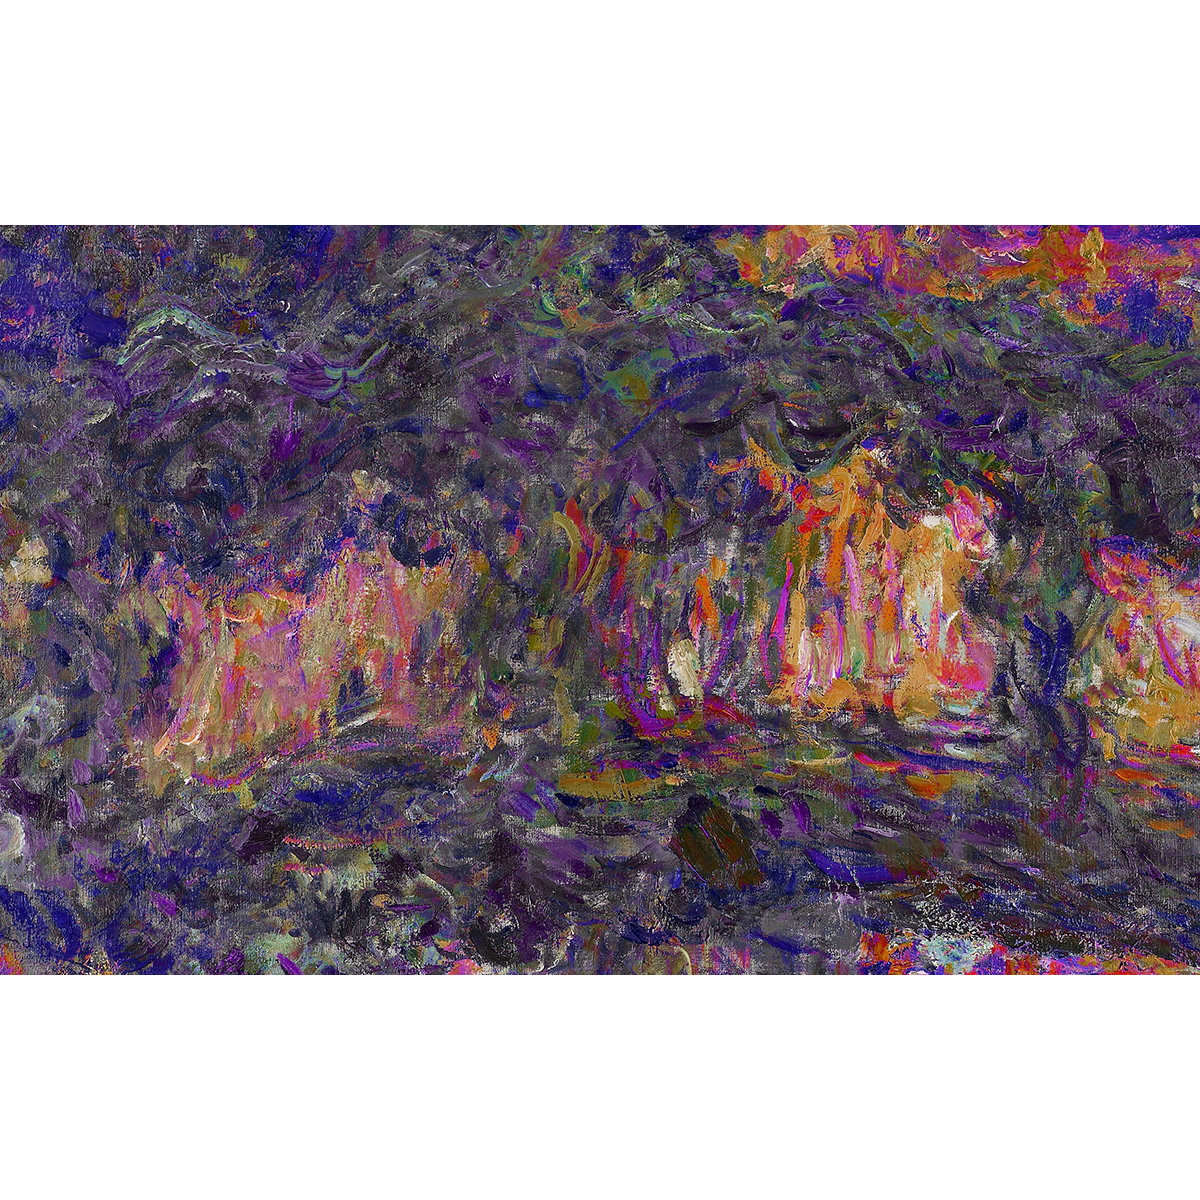 An abstract painting of various colors especially purple and orange